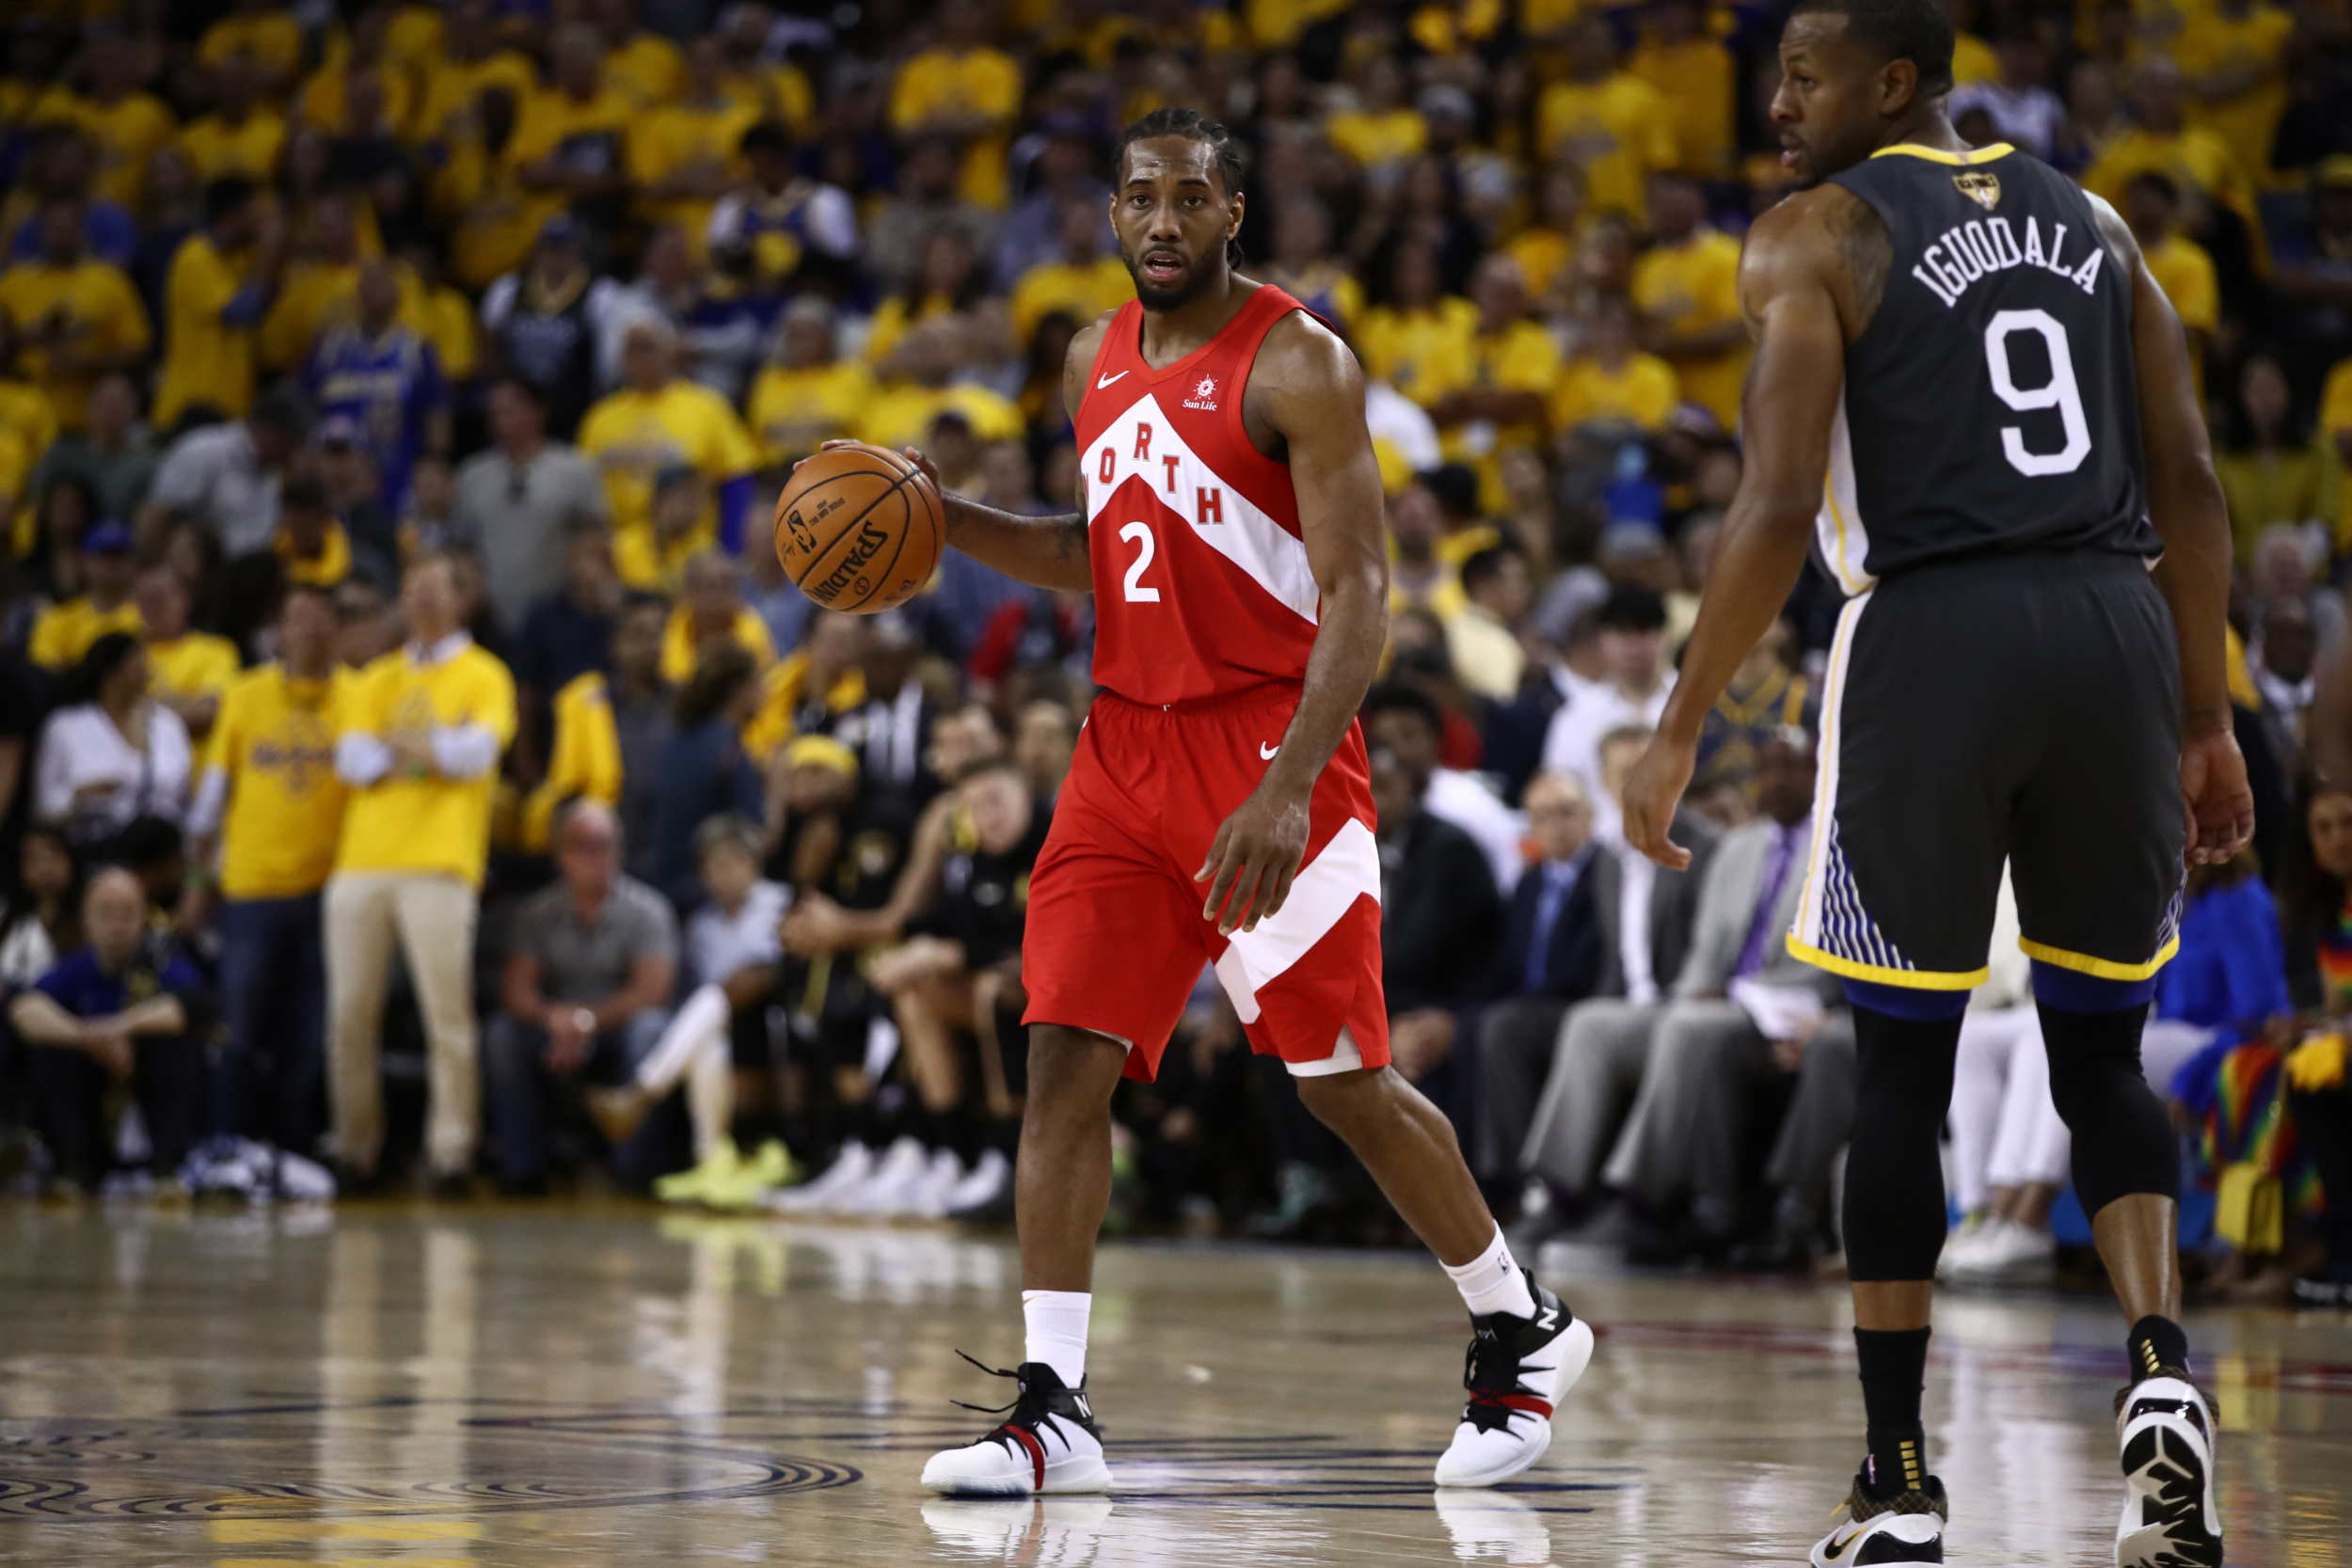 Nba Finals Schedule Tonight Raptors Vs Warriors Game 5 Live Stream Tv Channel Score And Latest Odds